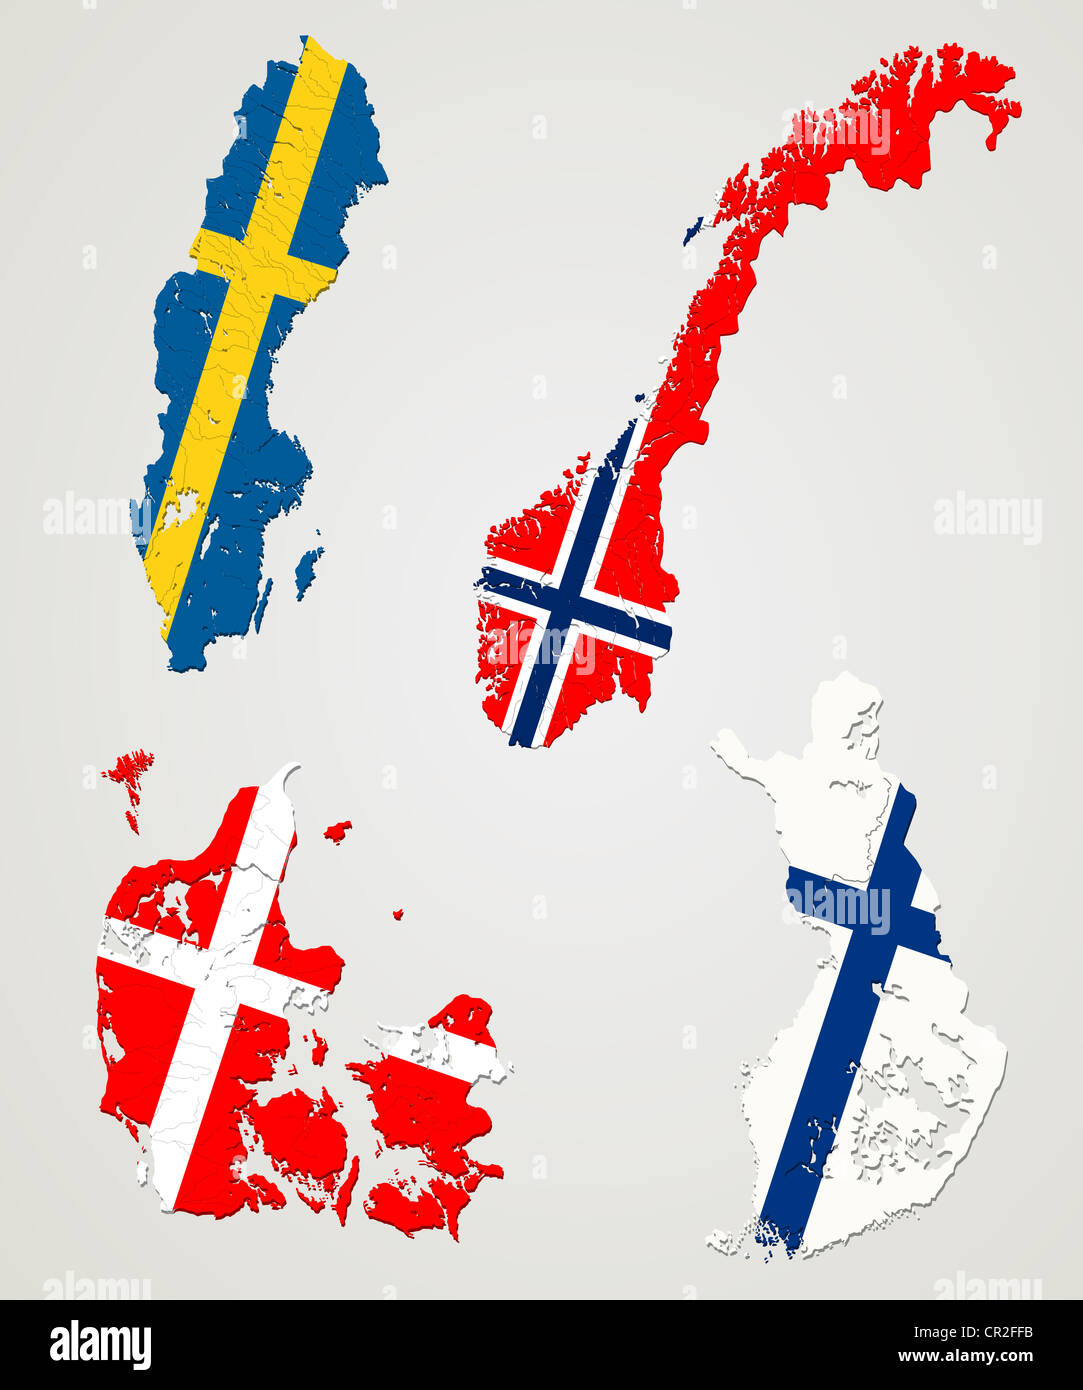 Picture of: Map And Flags Of Four Major Nordic Countries Norway Sweden Finland Stock Photo Alamy